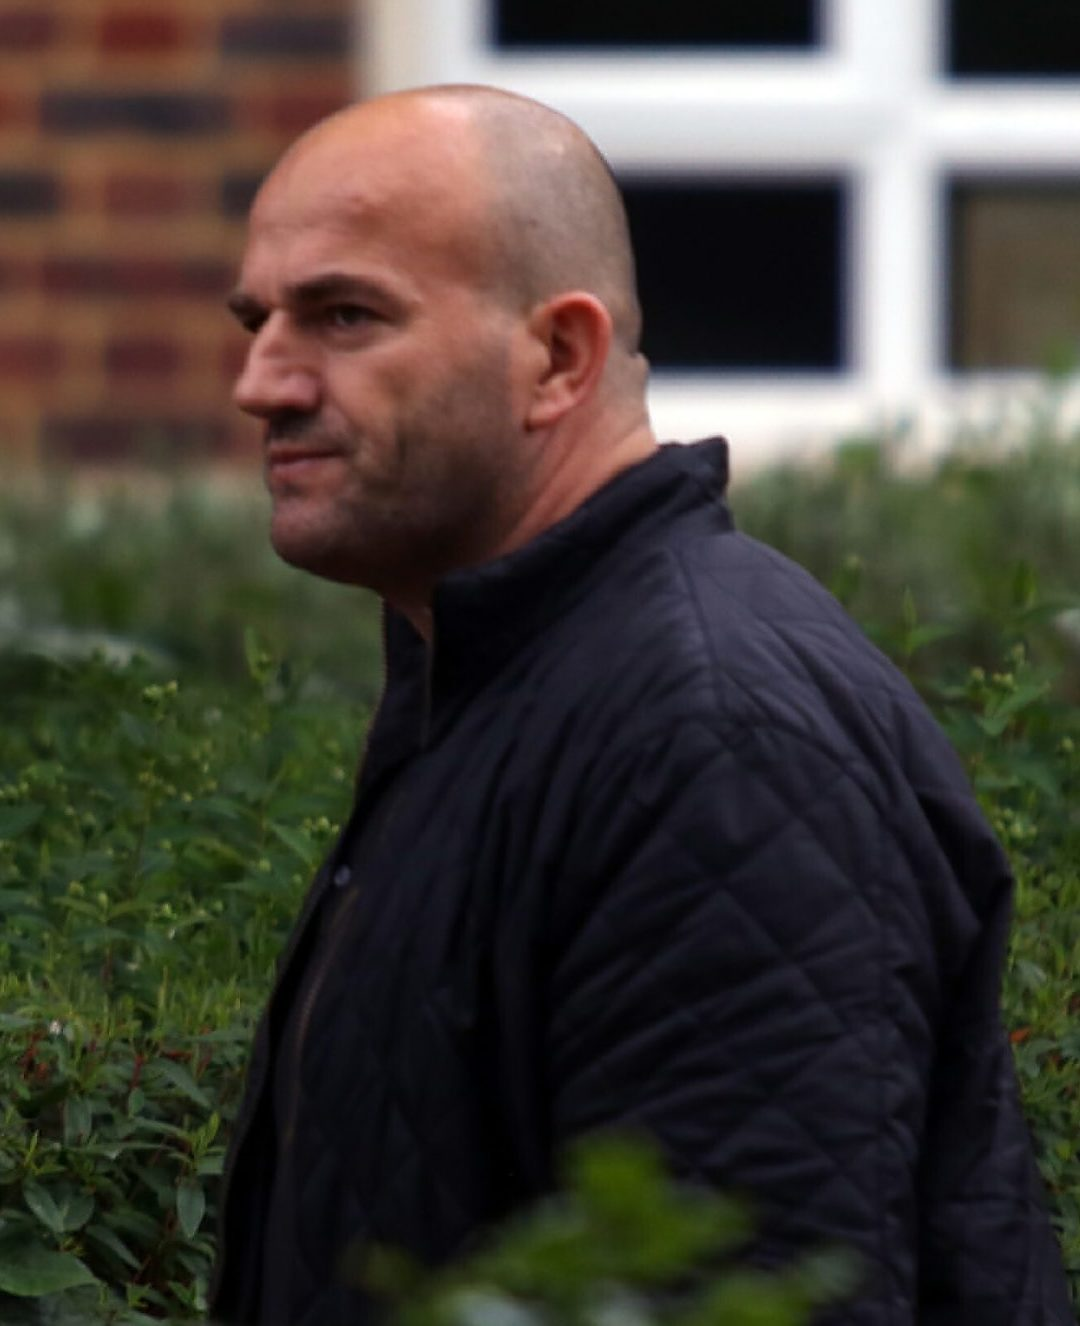 Ex 'Britain's Strongest Man' faces jail for people smuggling